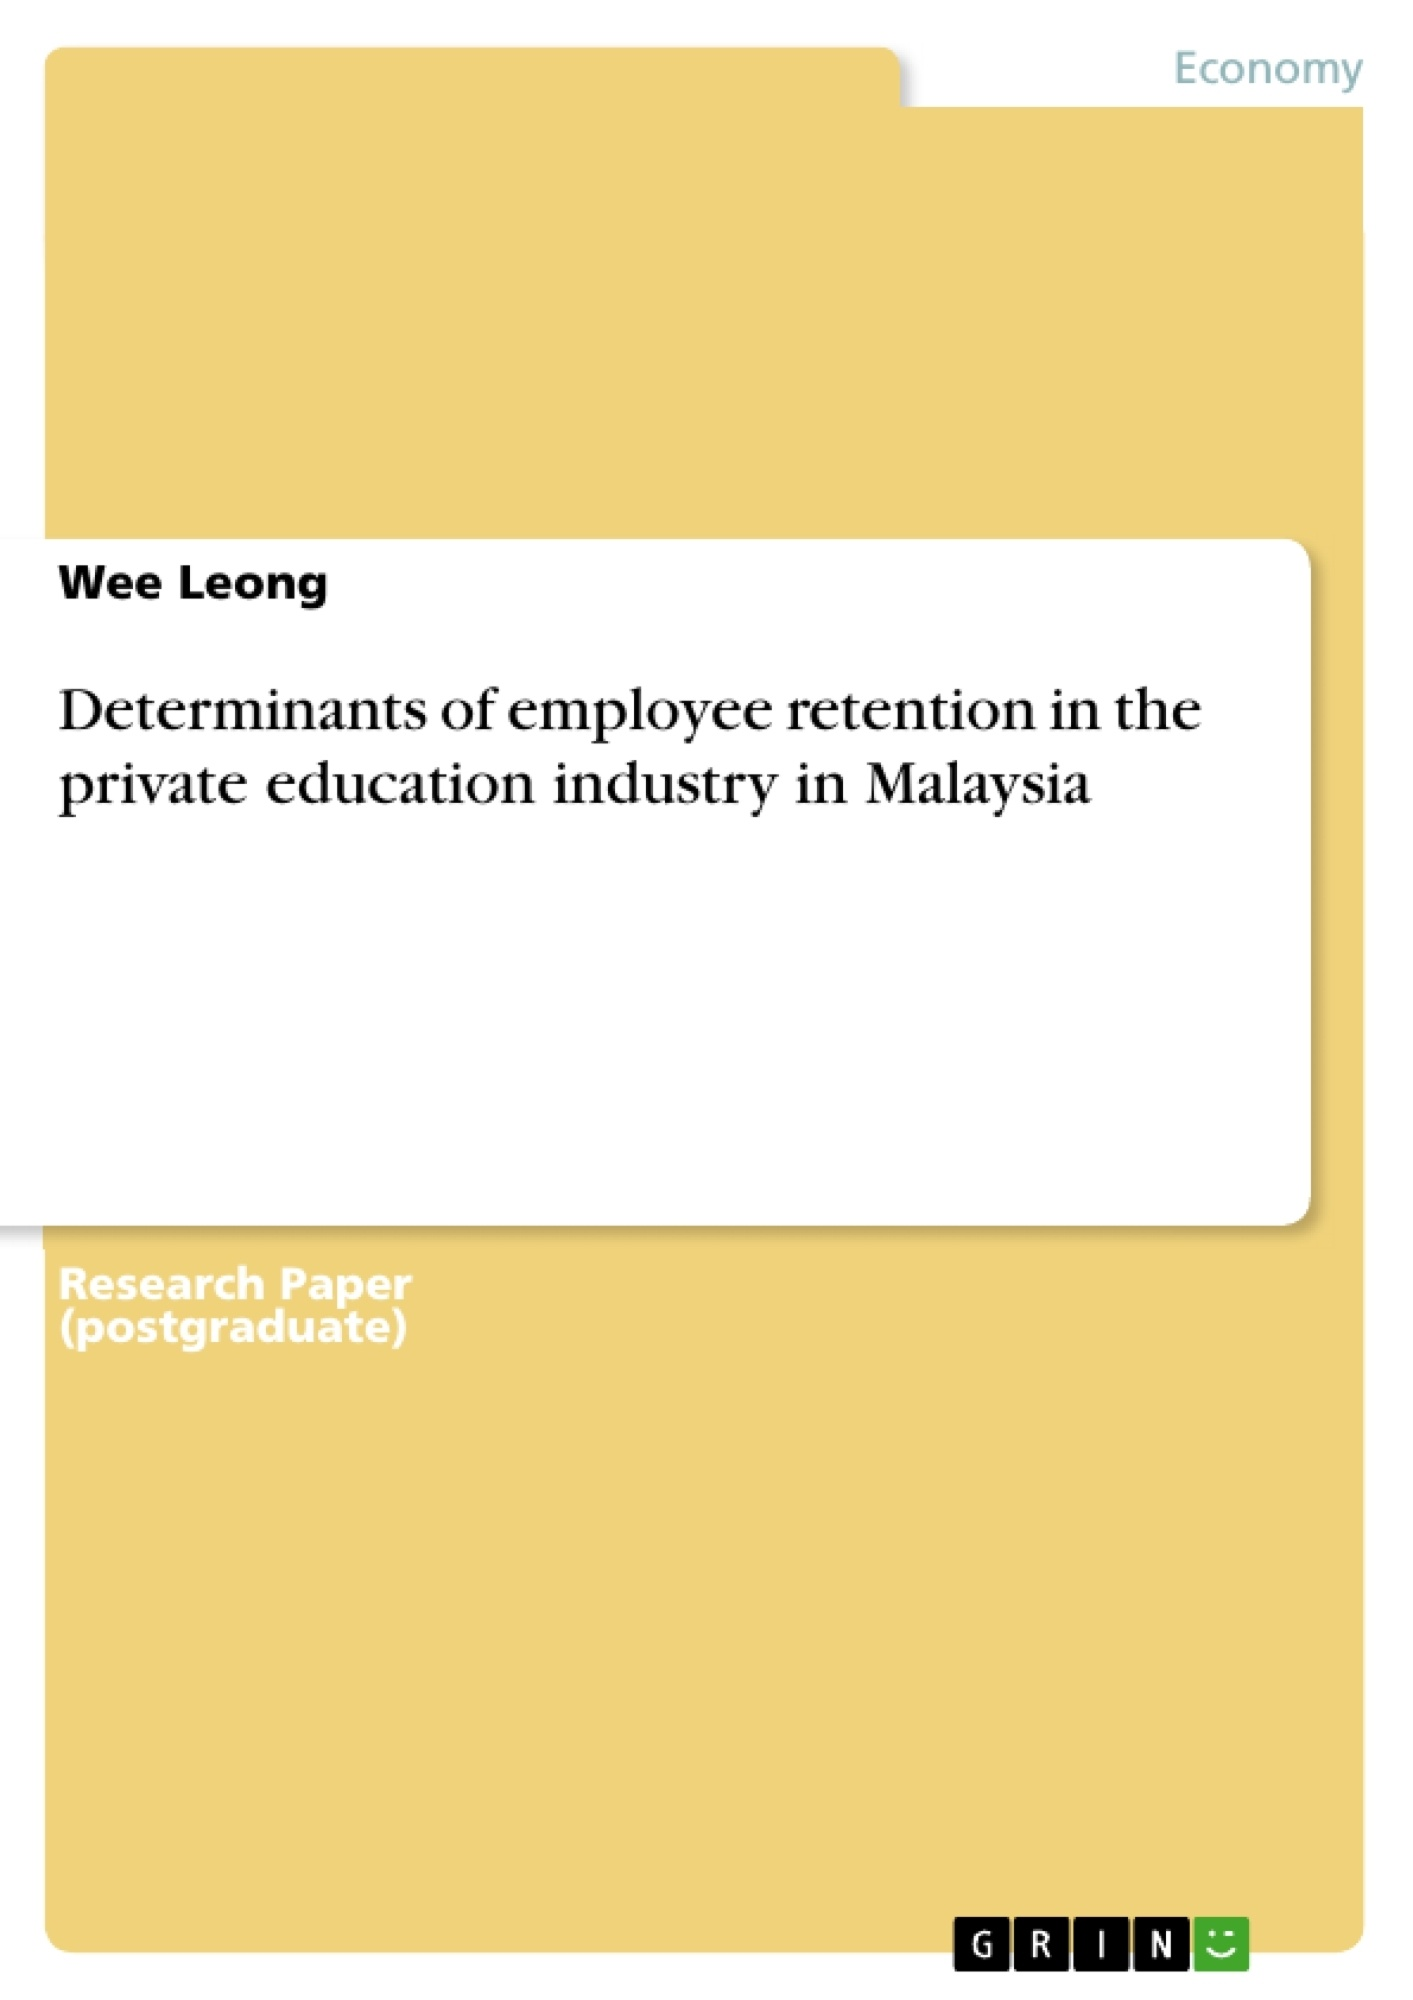 Title: Determinants of employee retention in the private education industry in Malaysia